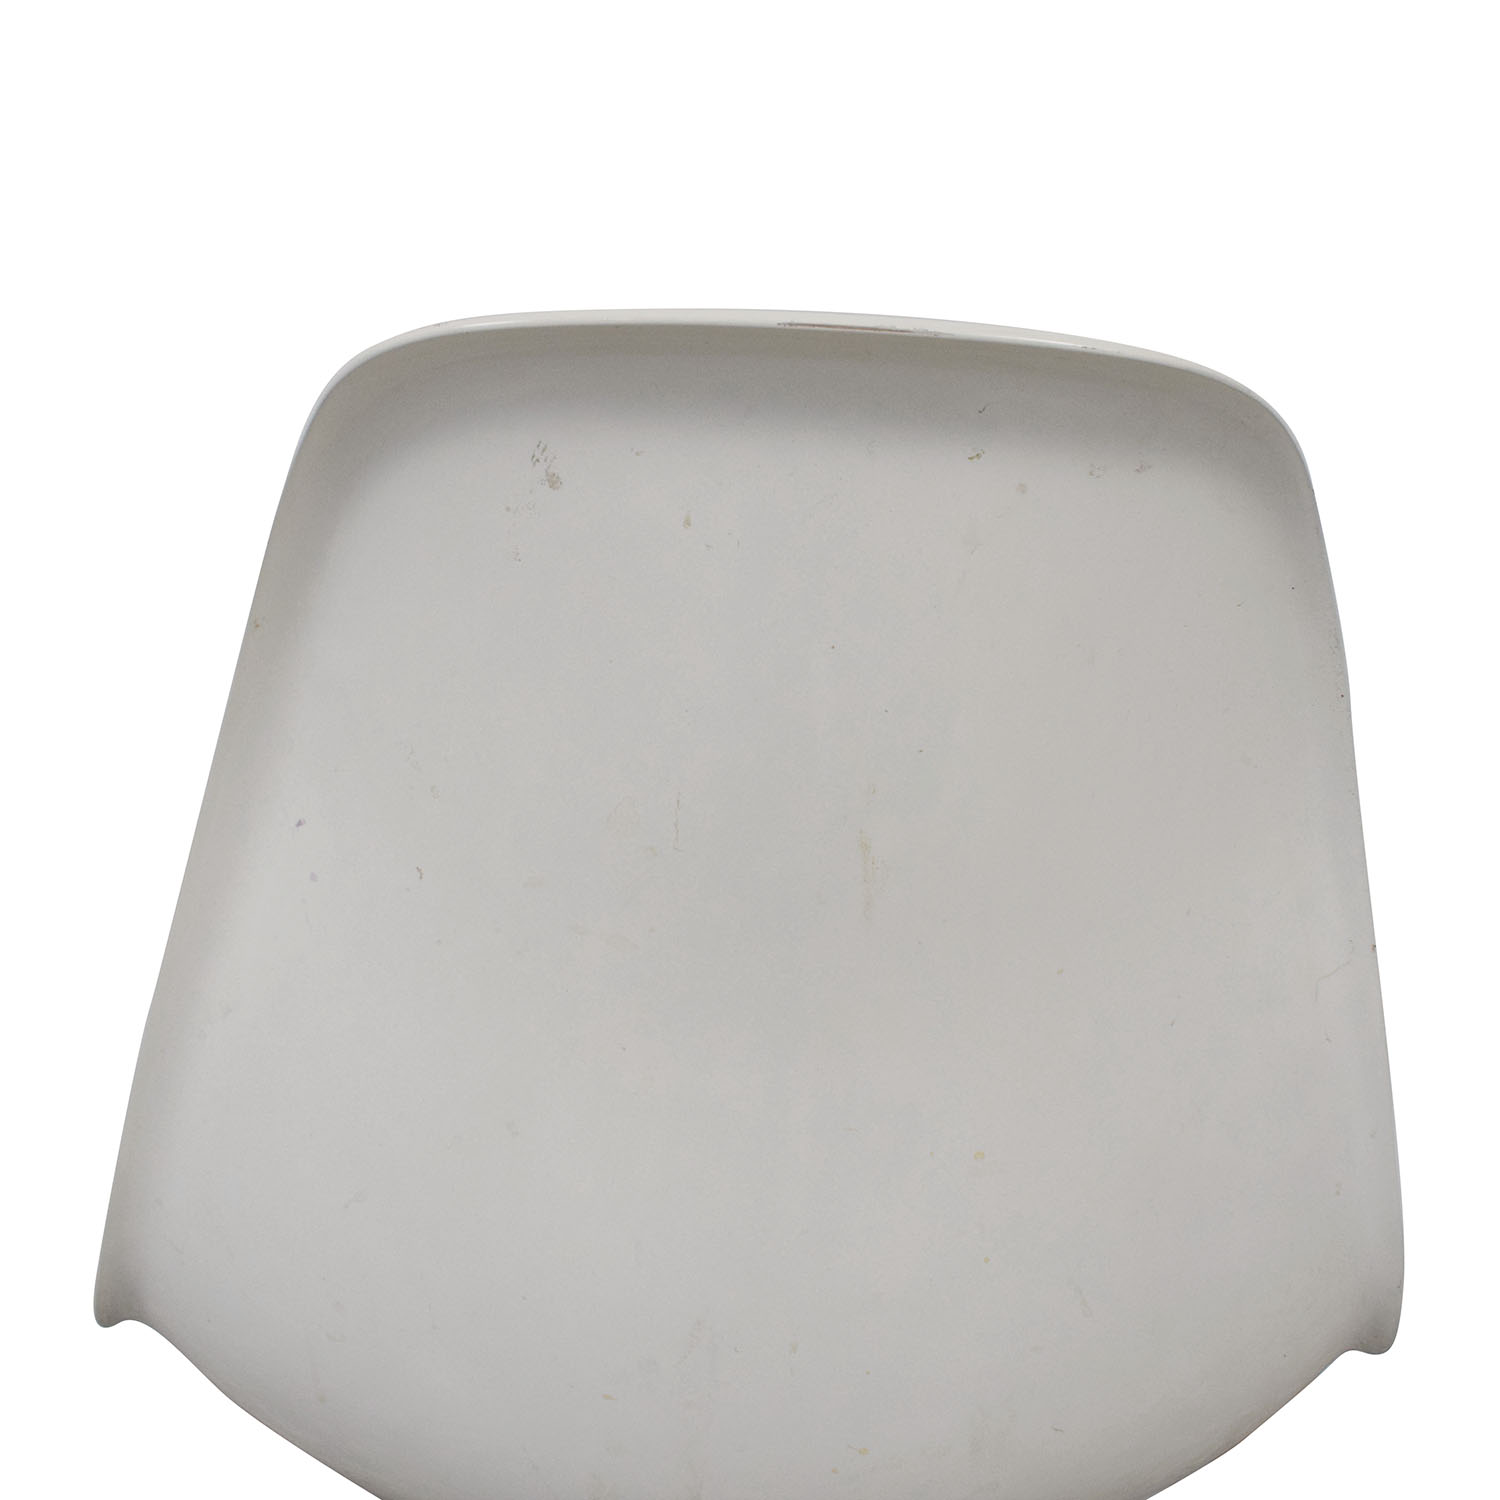 Herman Miller Herman Miller Eames Plastic Molded Chair White on sale